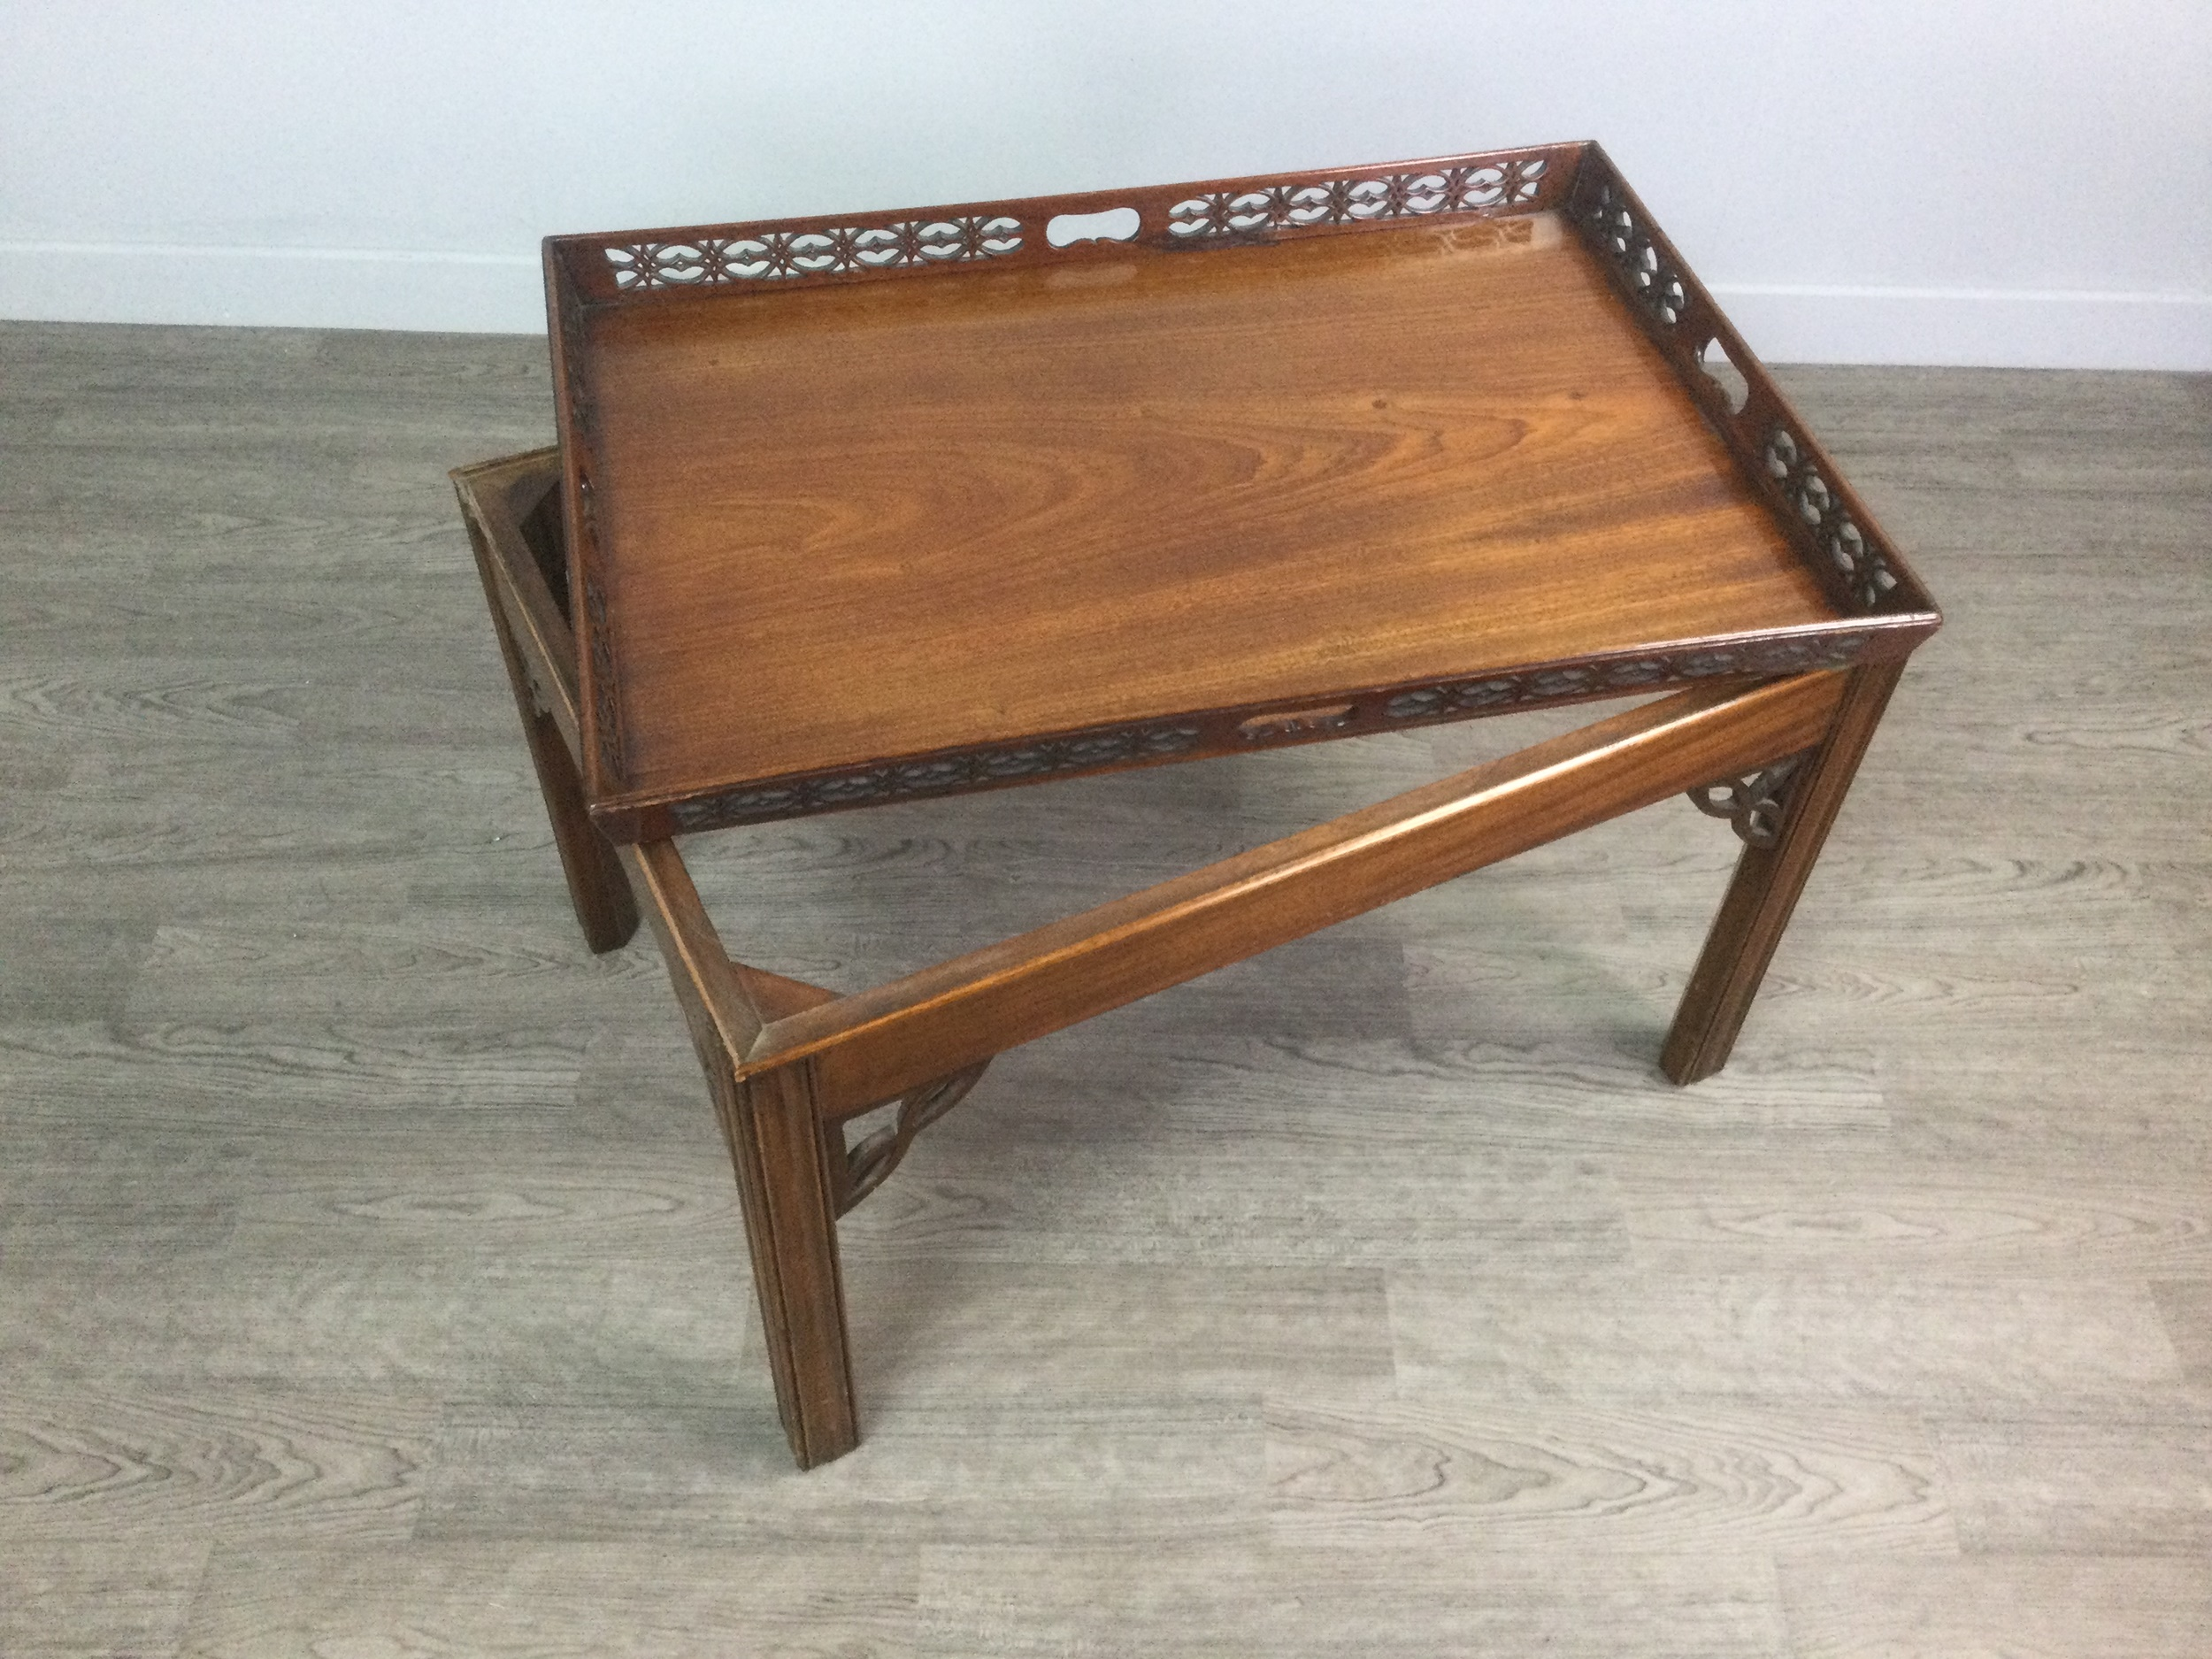 A MAHOGANY TRAY TOP OCCASIONAL TABLE OF CHIPPENDALE DESIGN - Image 2 of 2